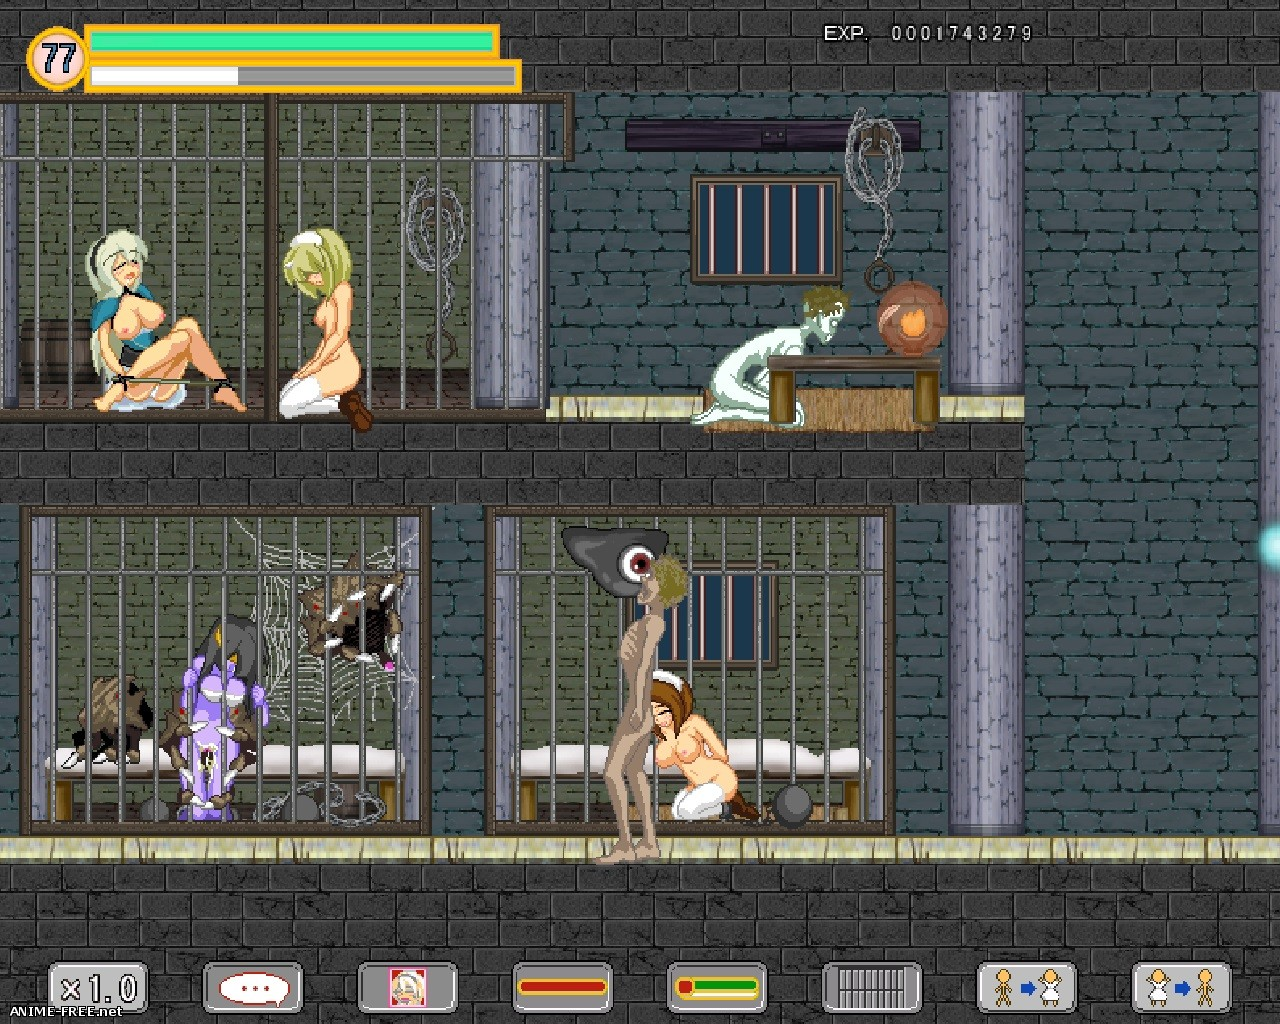 Satan woman 2 / Девушка сатана 2 [2014] [Cen] [Action, DOTs/Pixel] [JAP] H-Game